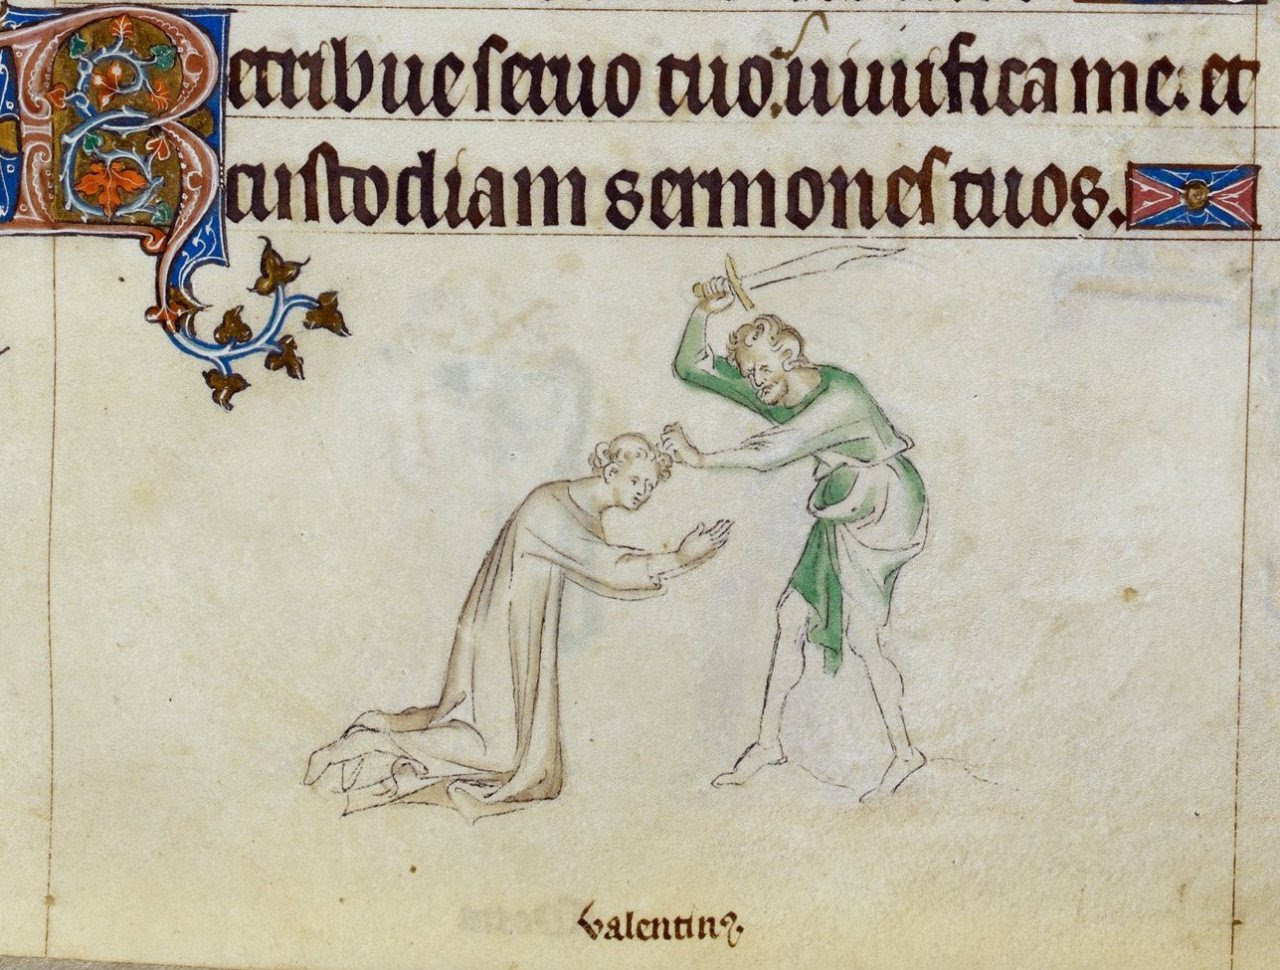 beheading of St. Valentine above: Psalm 118(119):17 'Retribue servo tuo, vivifica me, et custodiam sermones tuos.' ('Deal bountifully with thy servant, that I may live, and keep thy word.') Queen Mary Psalter, London 1310-1320. British Library, Royal...